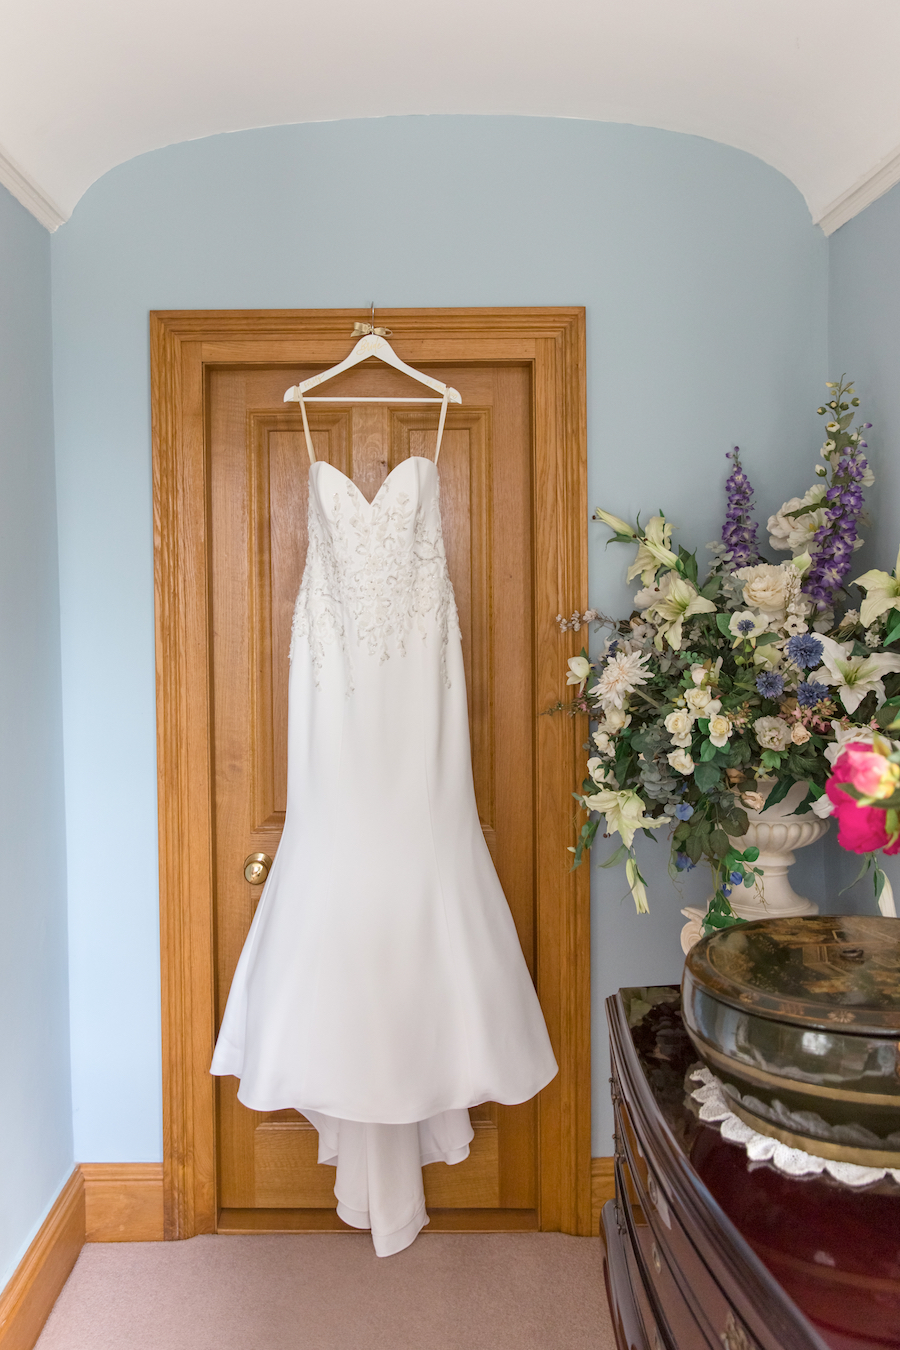 Real wedding by Ayshea Goldberg Photography at Layer Marney Tower (2)